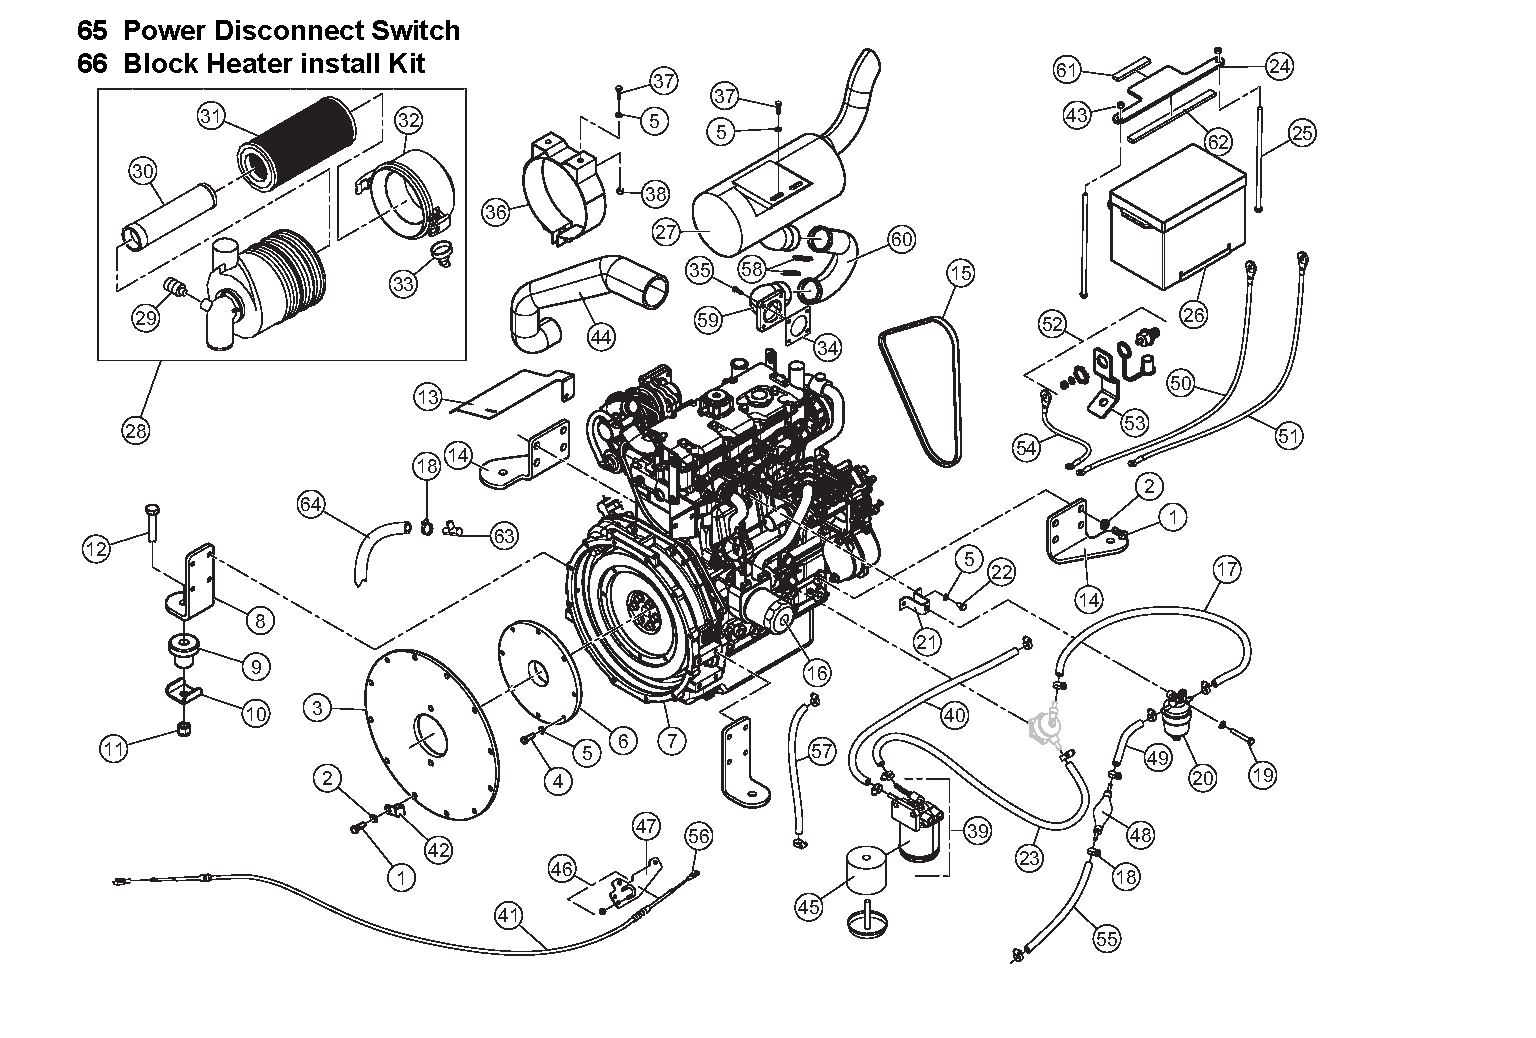 Diagram 2-1A Engine - Intake - Exhaust - Battery